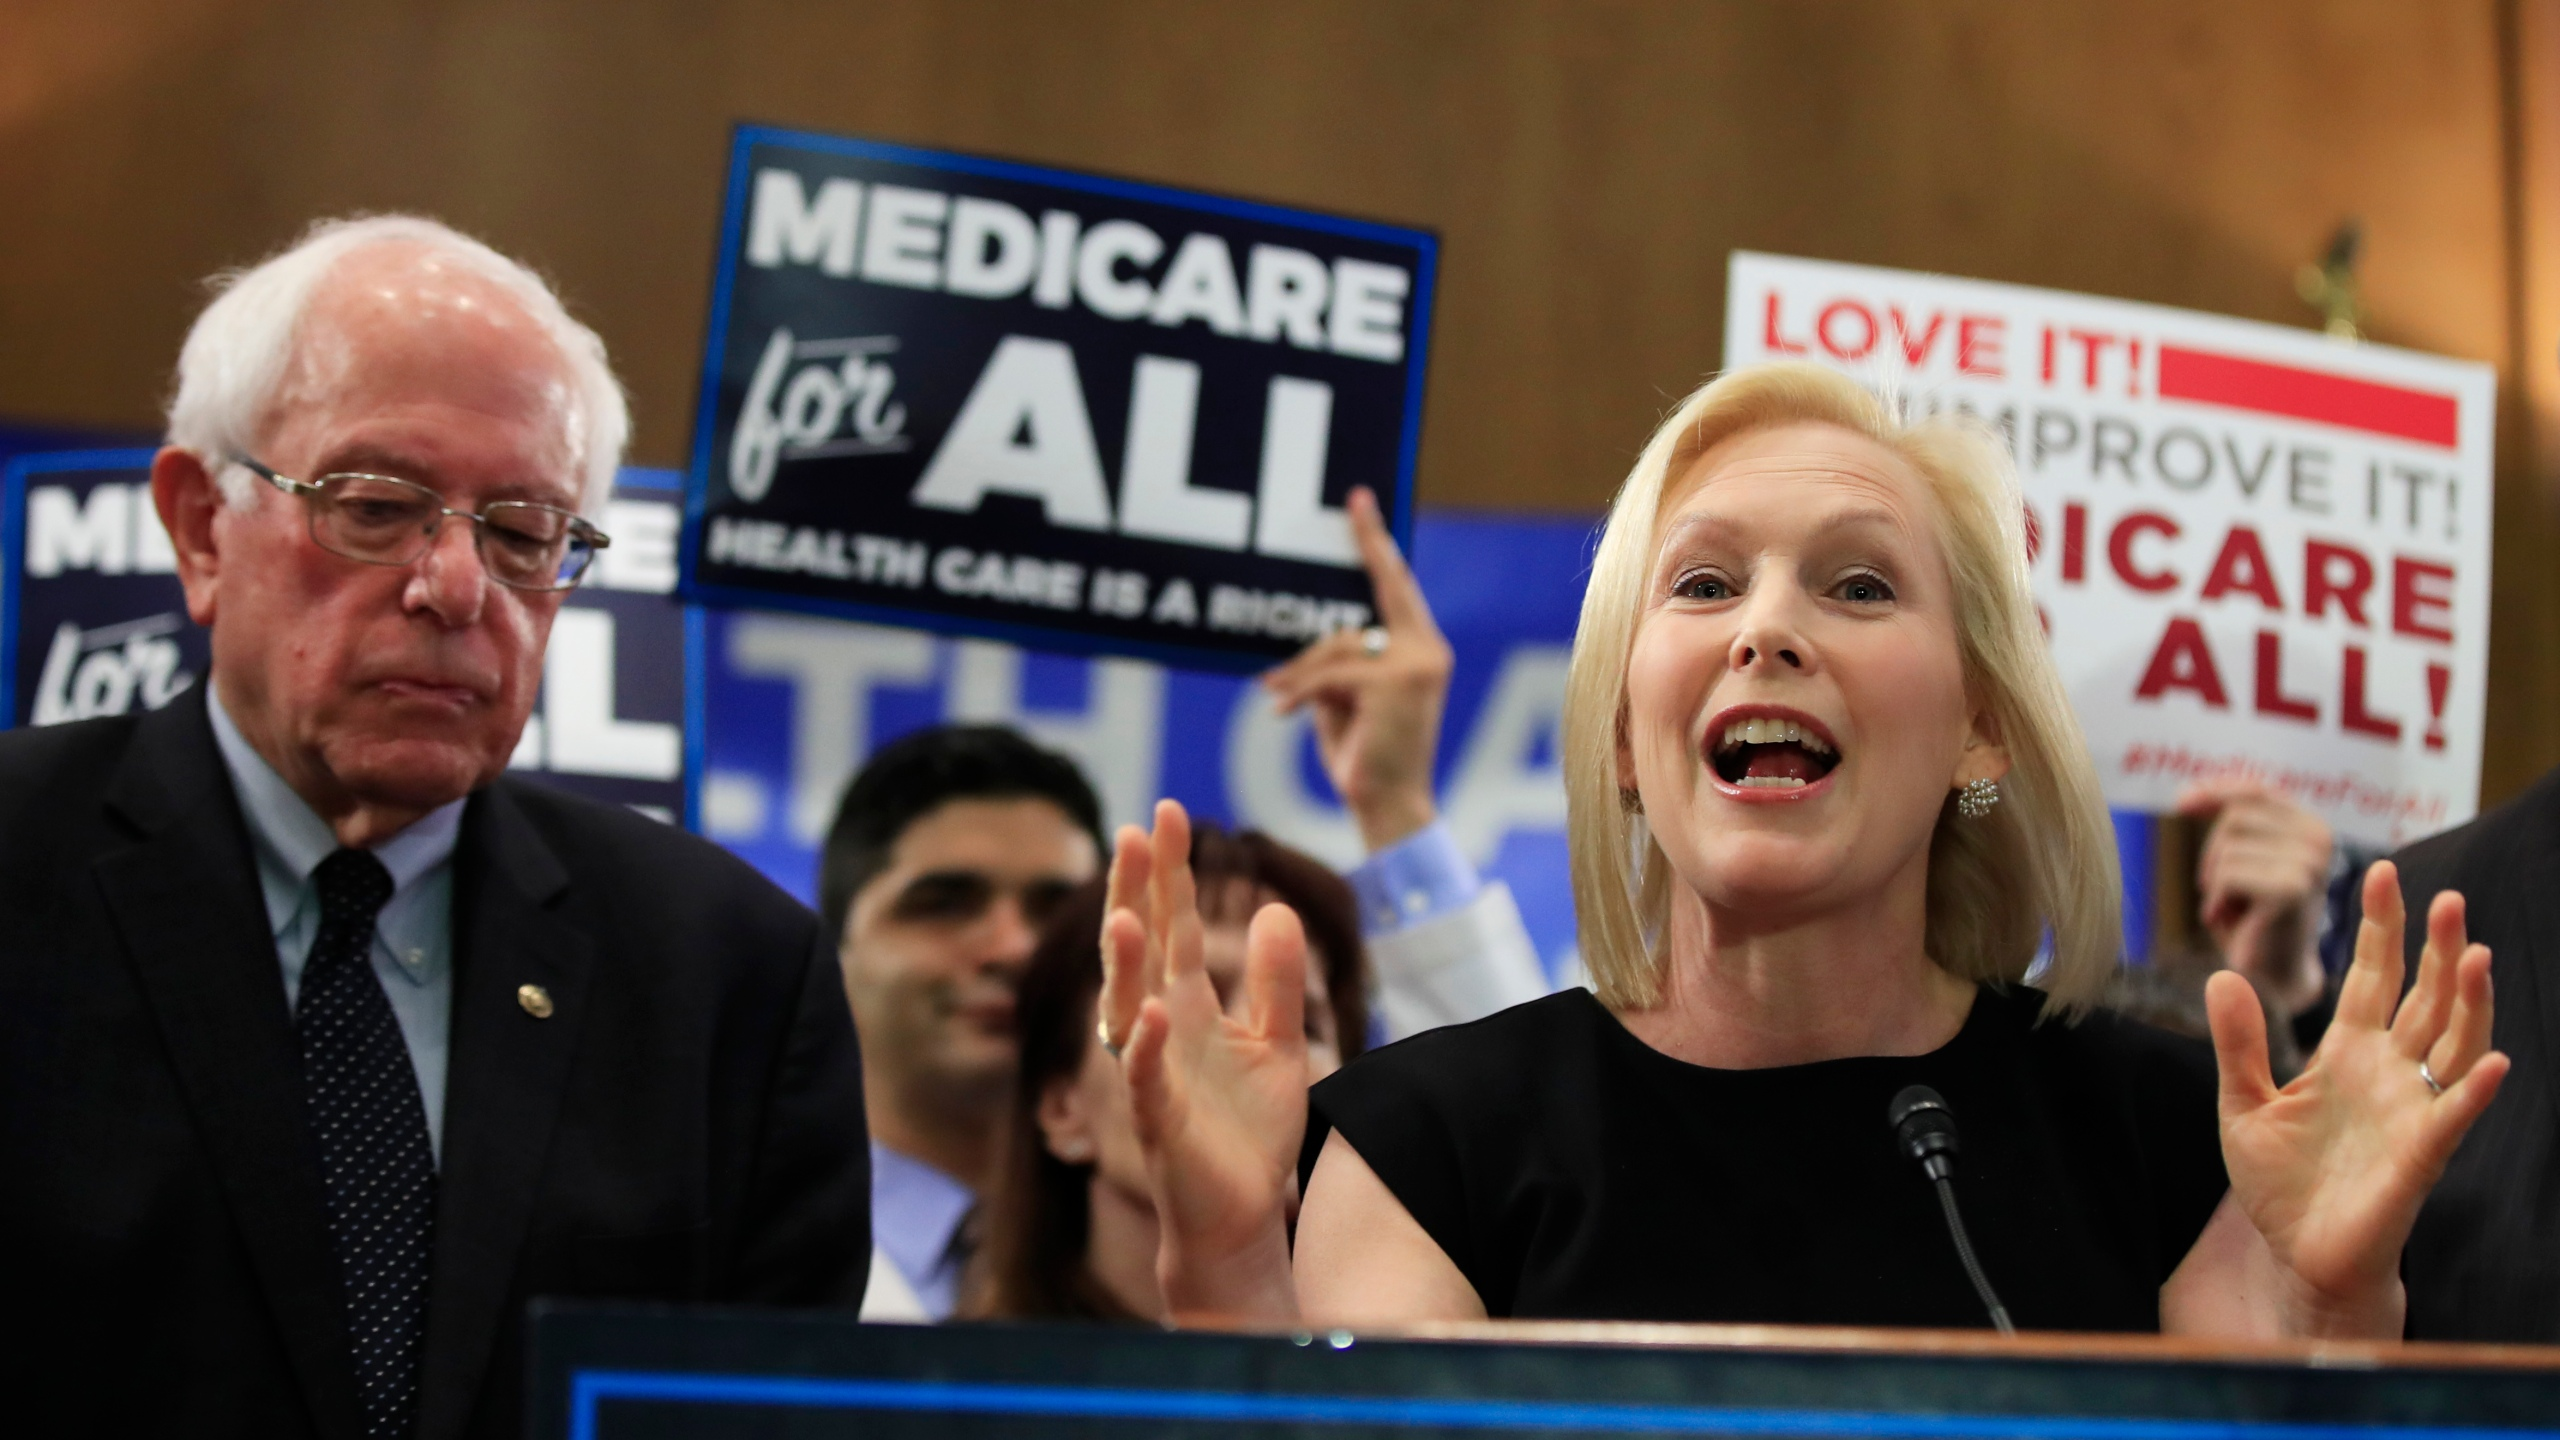 Sanders and Gillibrand at a Medicare for All event in 2019